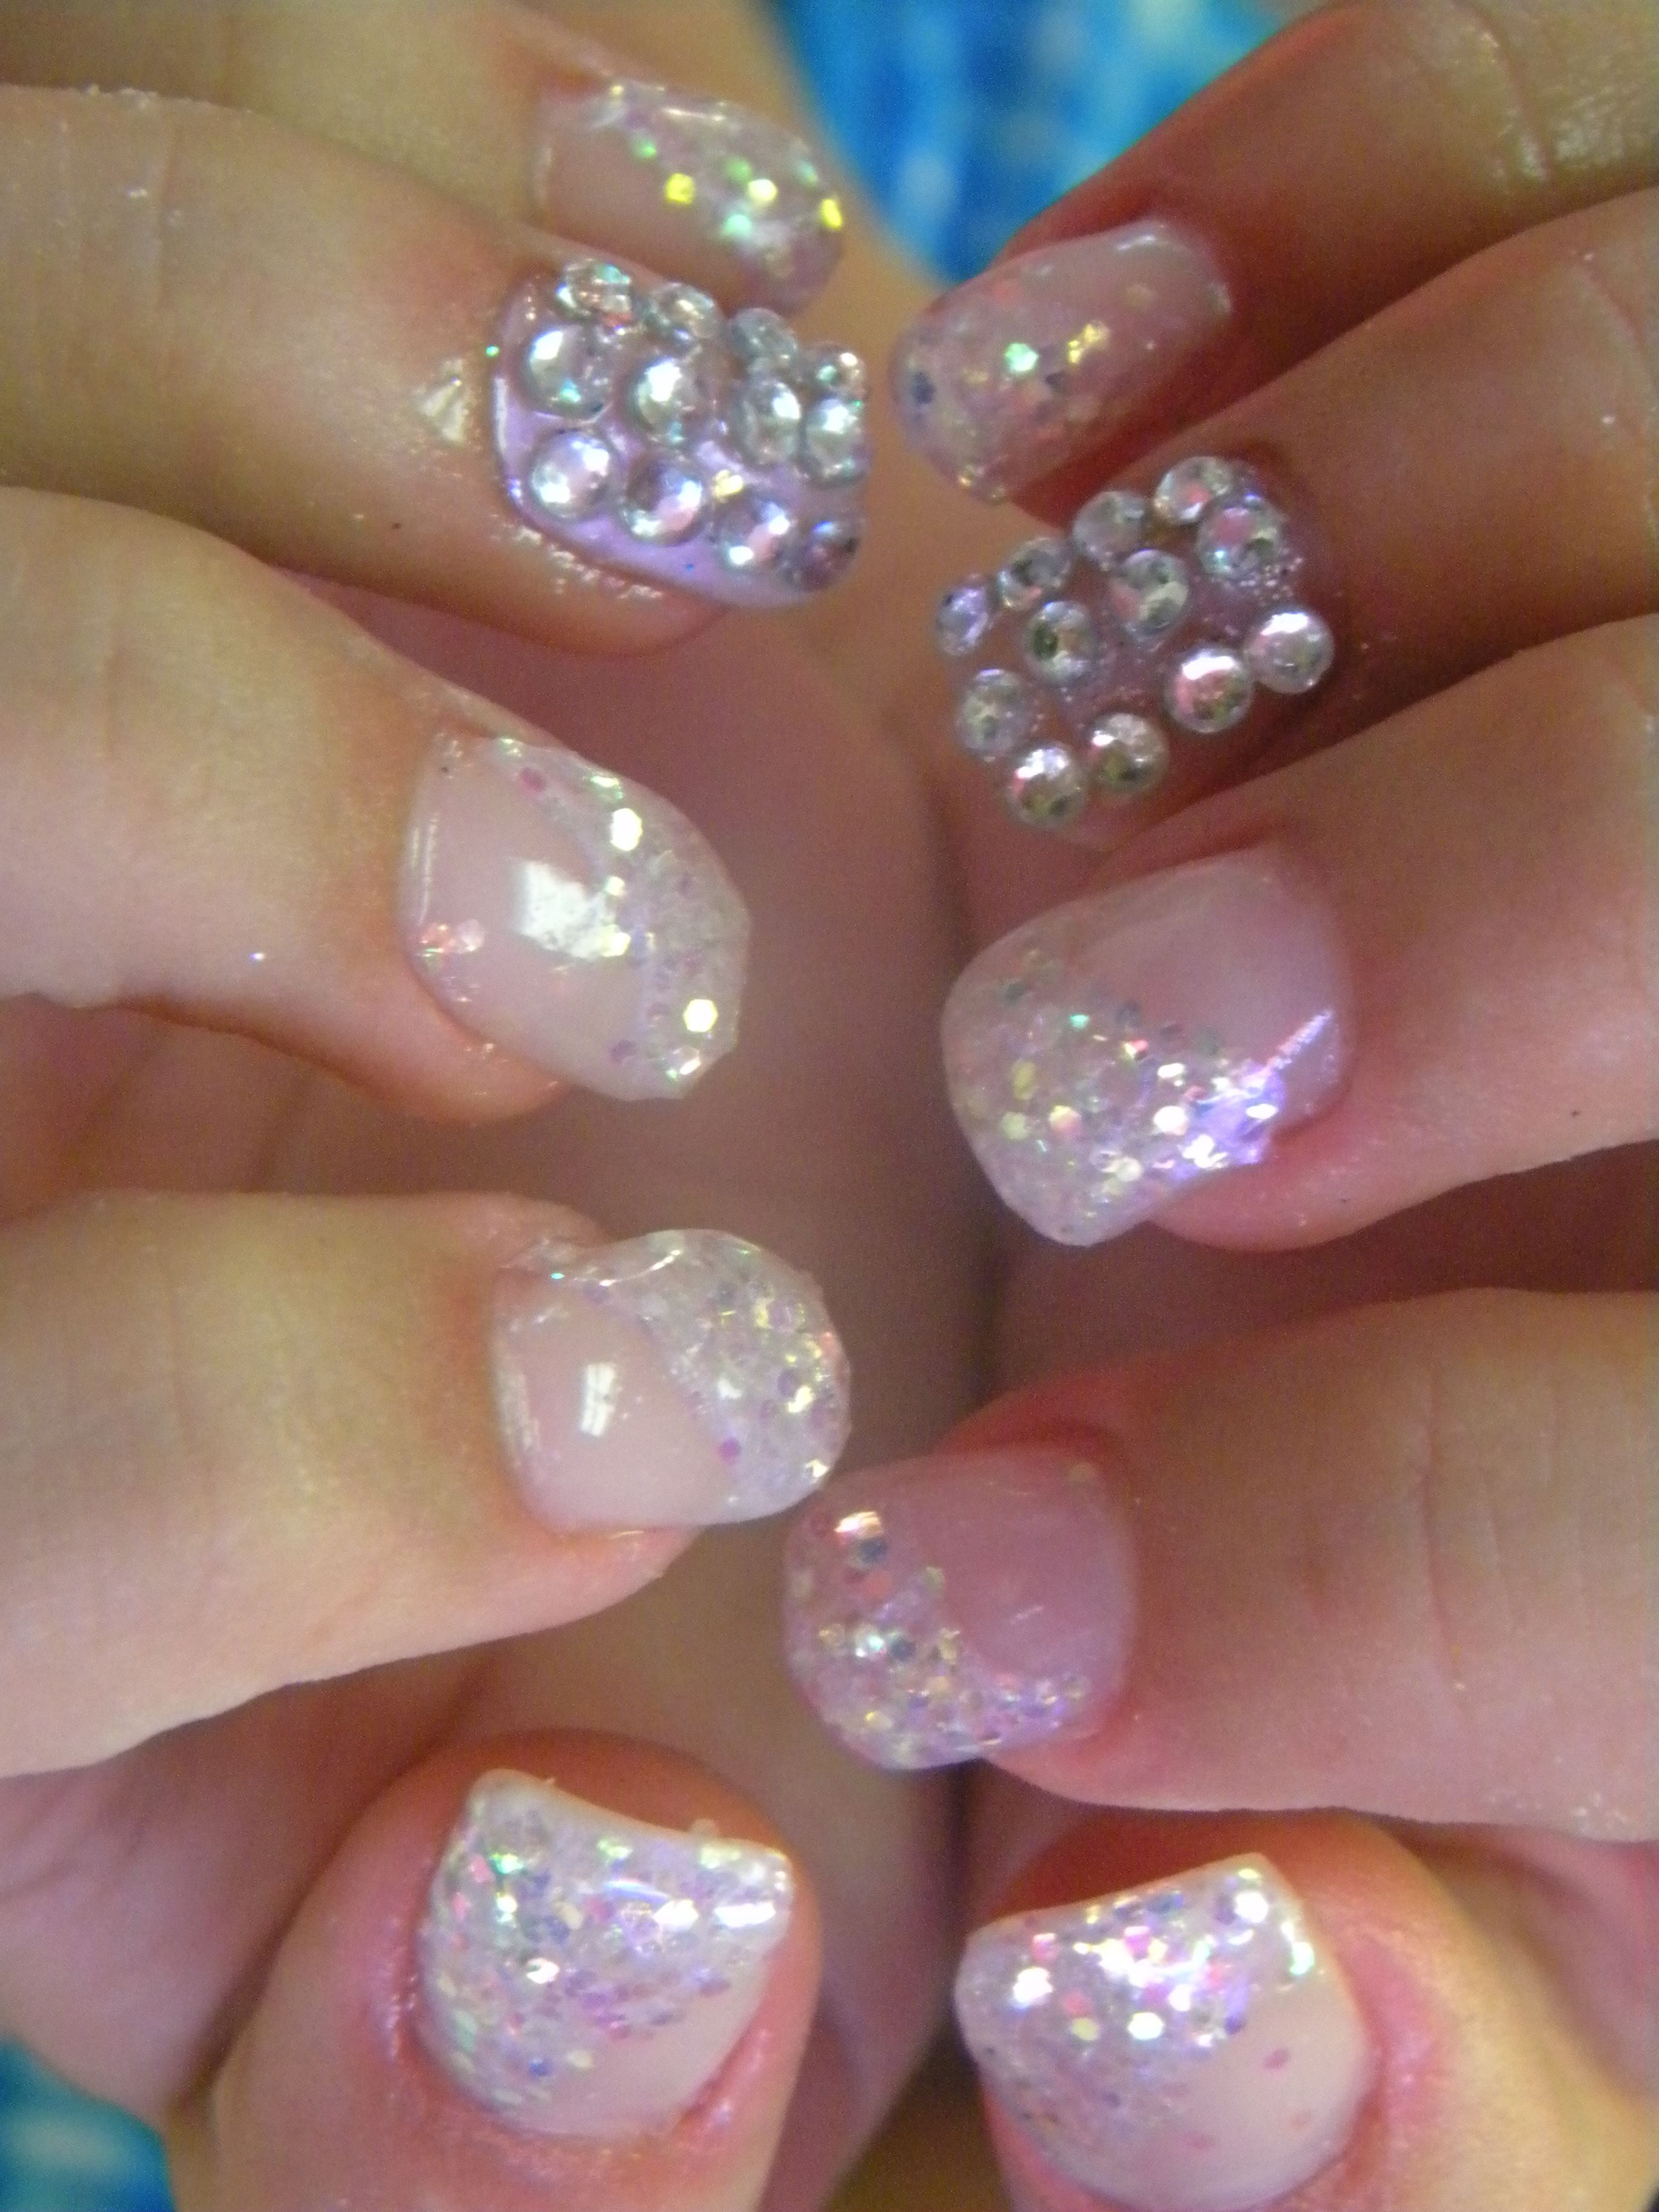 Nail Design Ideas 2015 nail design 2016 Nails For Prom 2015 Prety Helpful Nail Ideas Tips For Prom